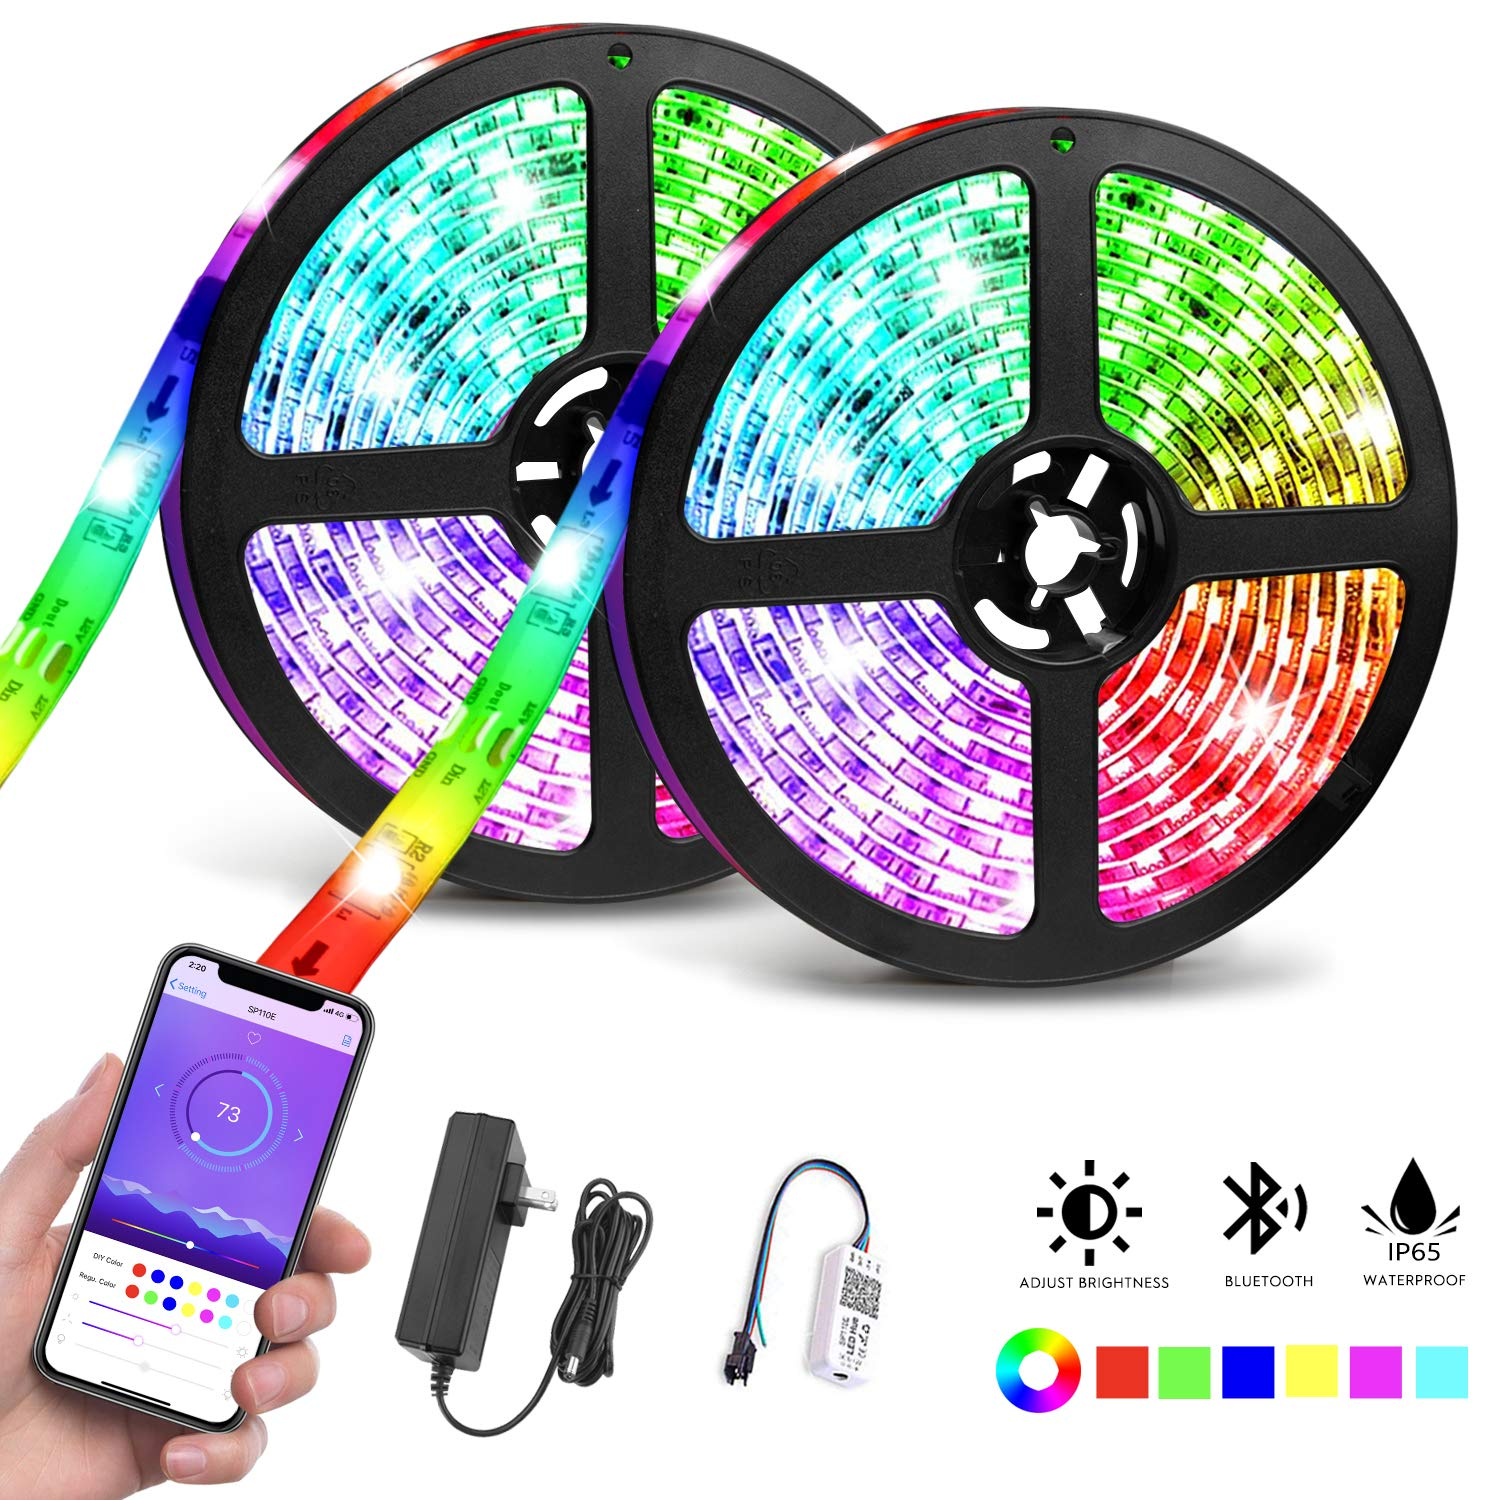 LED Strip Lights Waterproof, 32.8ft/10M Bluetooth LED Chasing Light with APP, Dream Color Changing RGB Rope Lights Kit, 12V 300 LEDs Flexible Led Strip Lighting for Bedroom Kitchen Home Decoration by Tudoccy